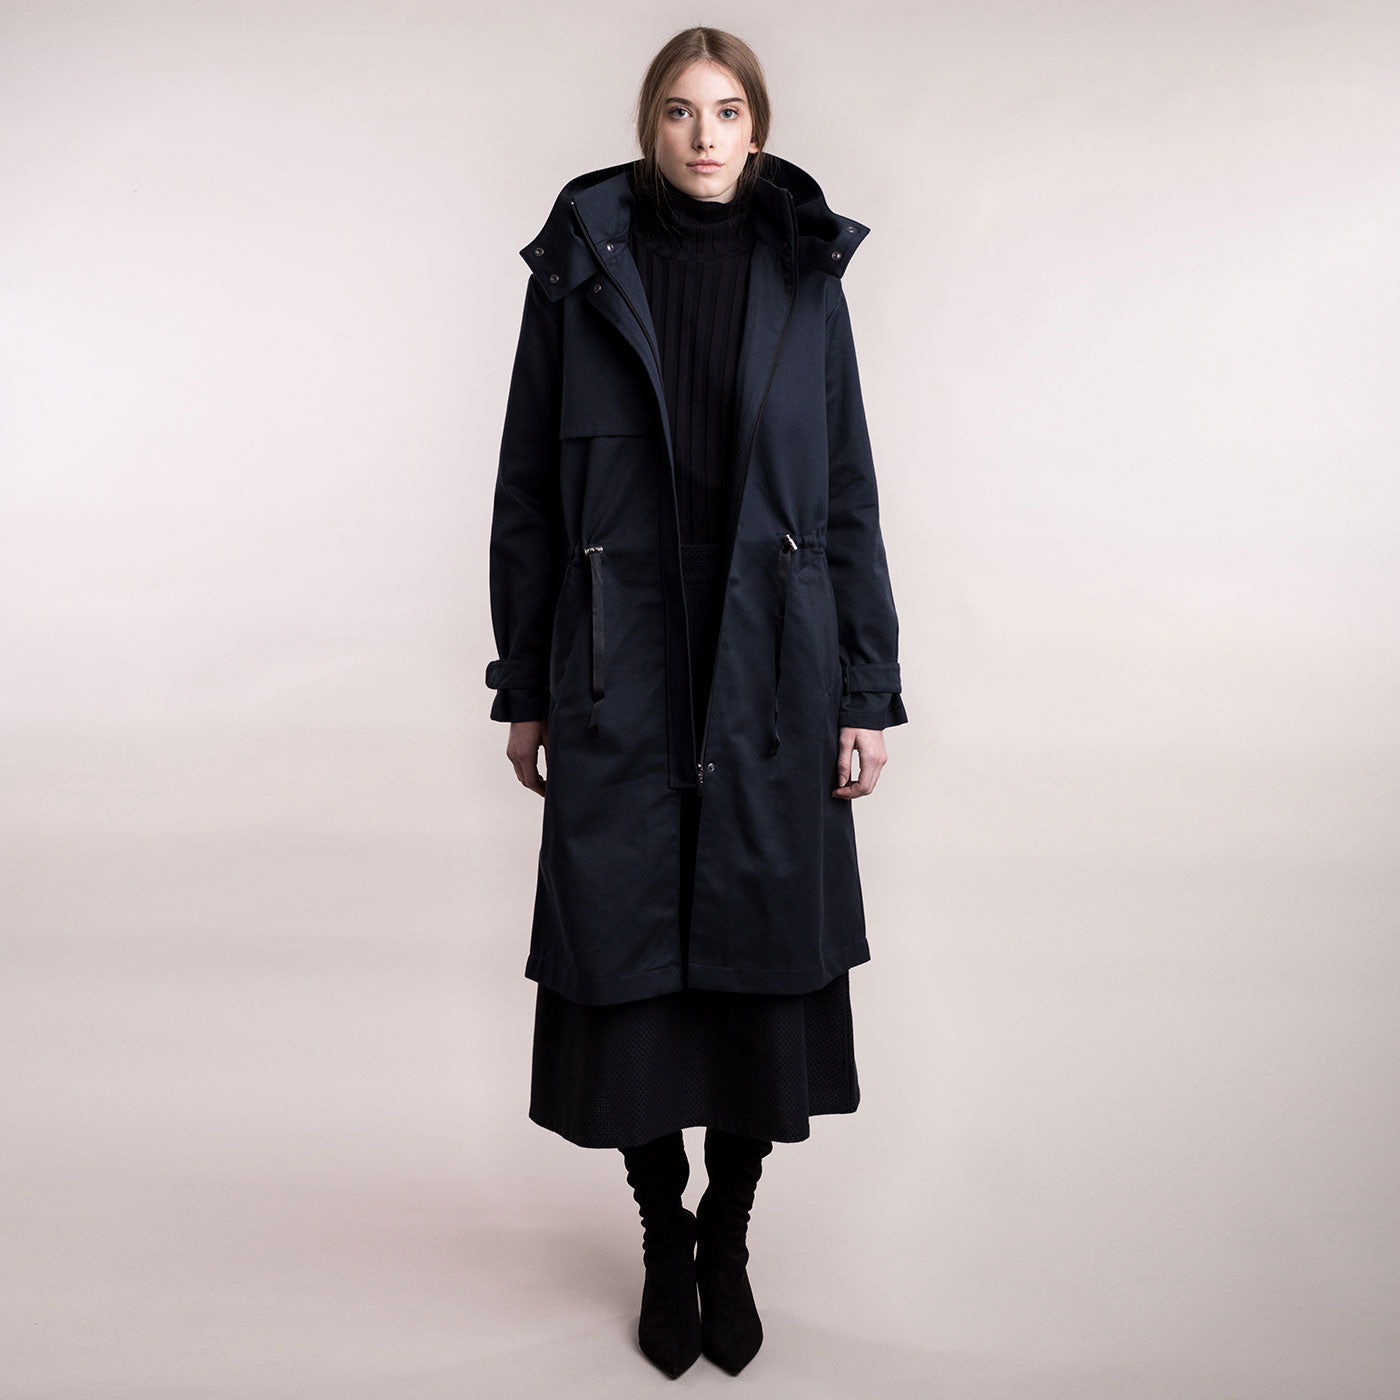 The model wears a dark blue sustainable organic cotton hooded water-resistant coat, frontal view.